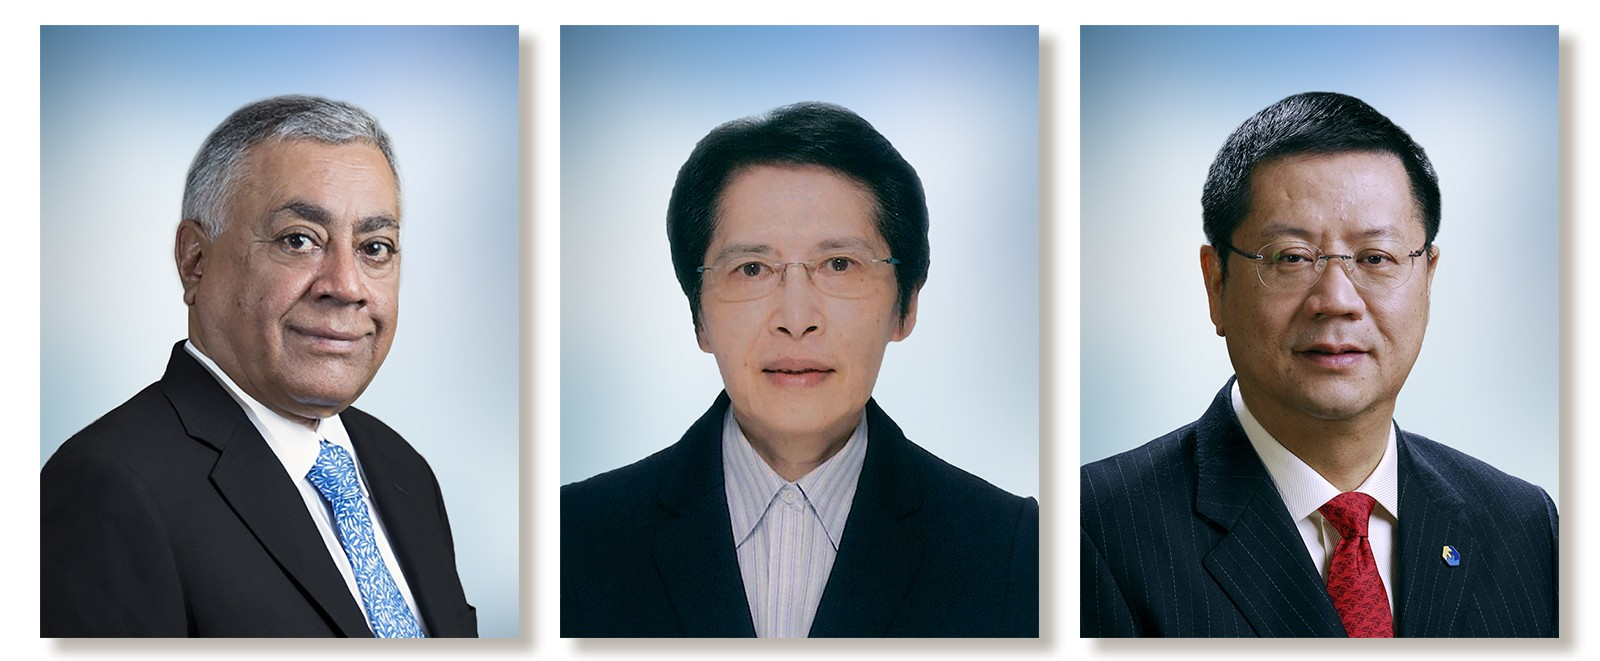 (From left) Mr Harry S. Banga, Miss Tong Hing-min, and Mr Wong Chun-hong.